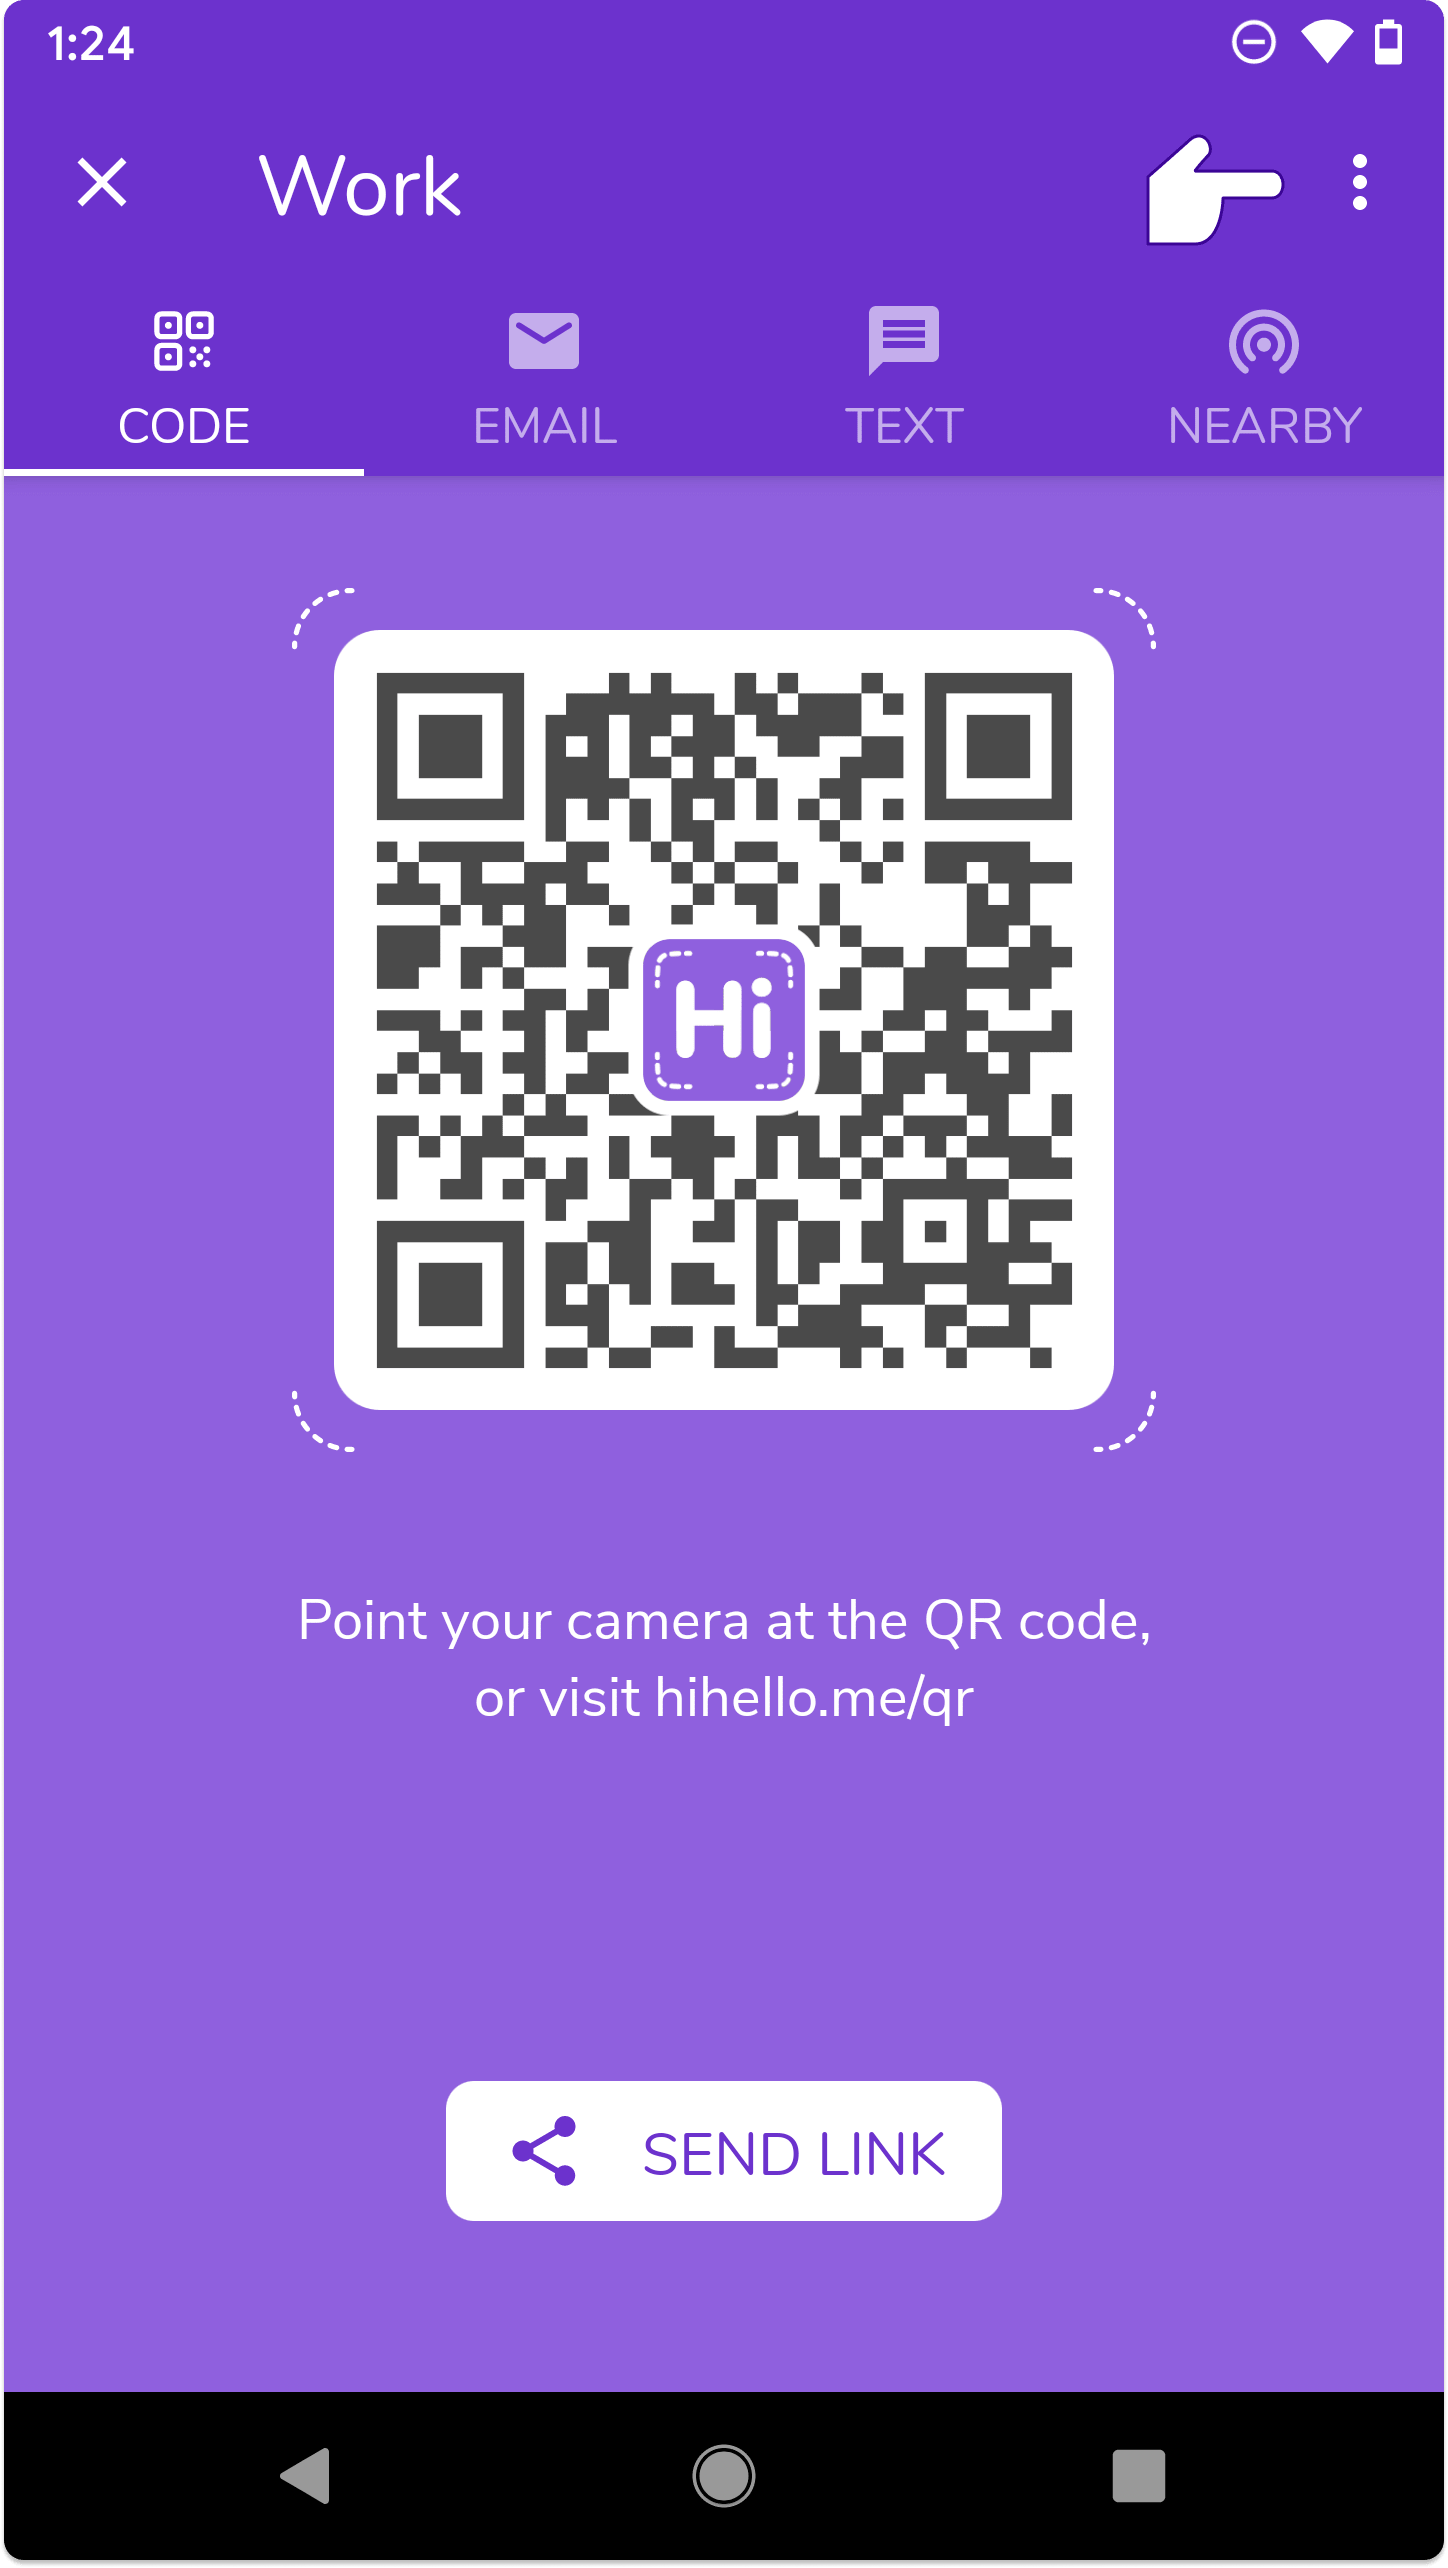 Save your QR code on Android